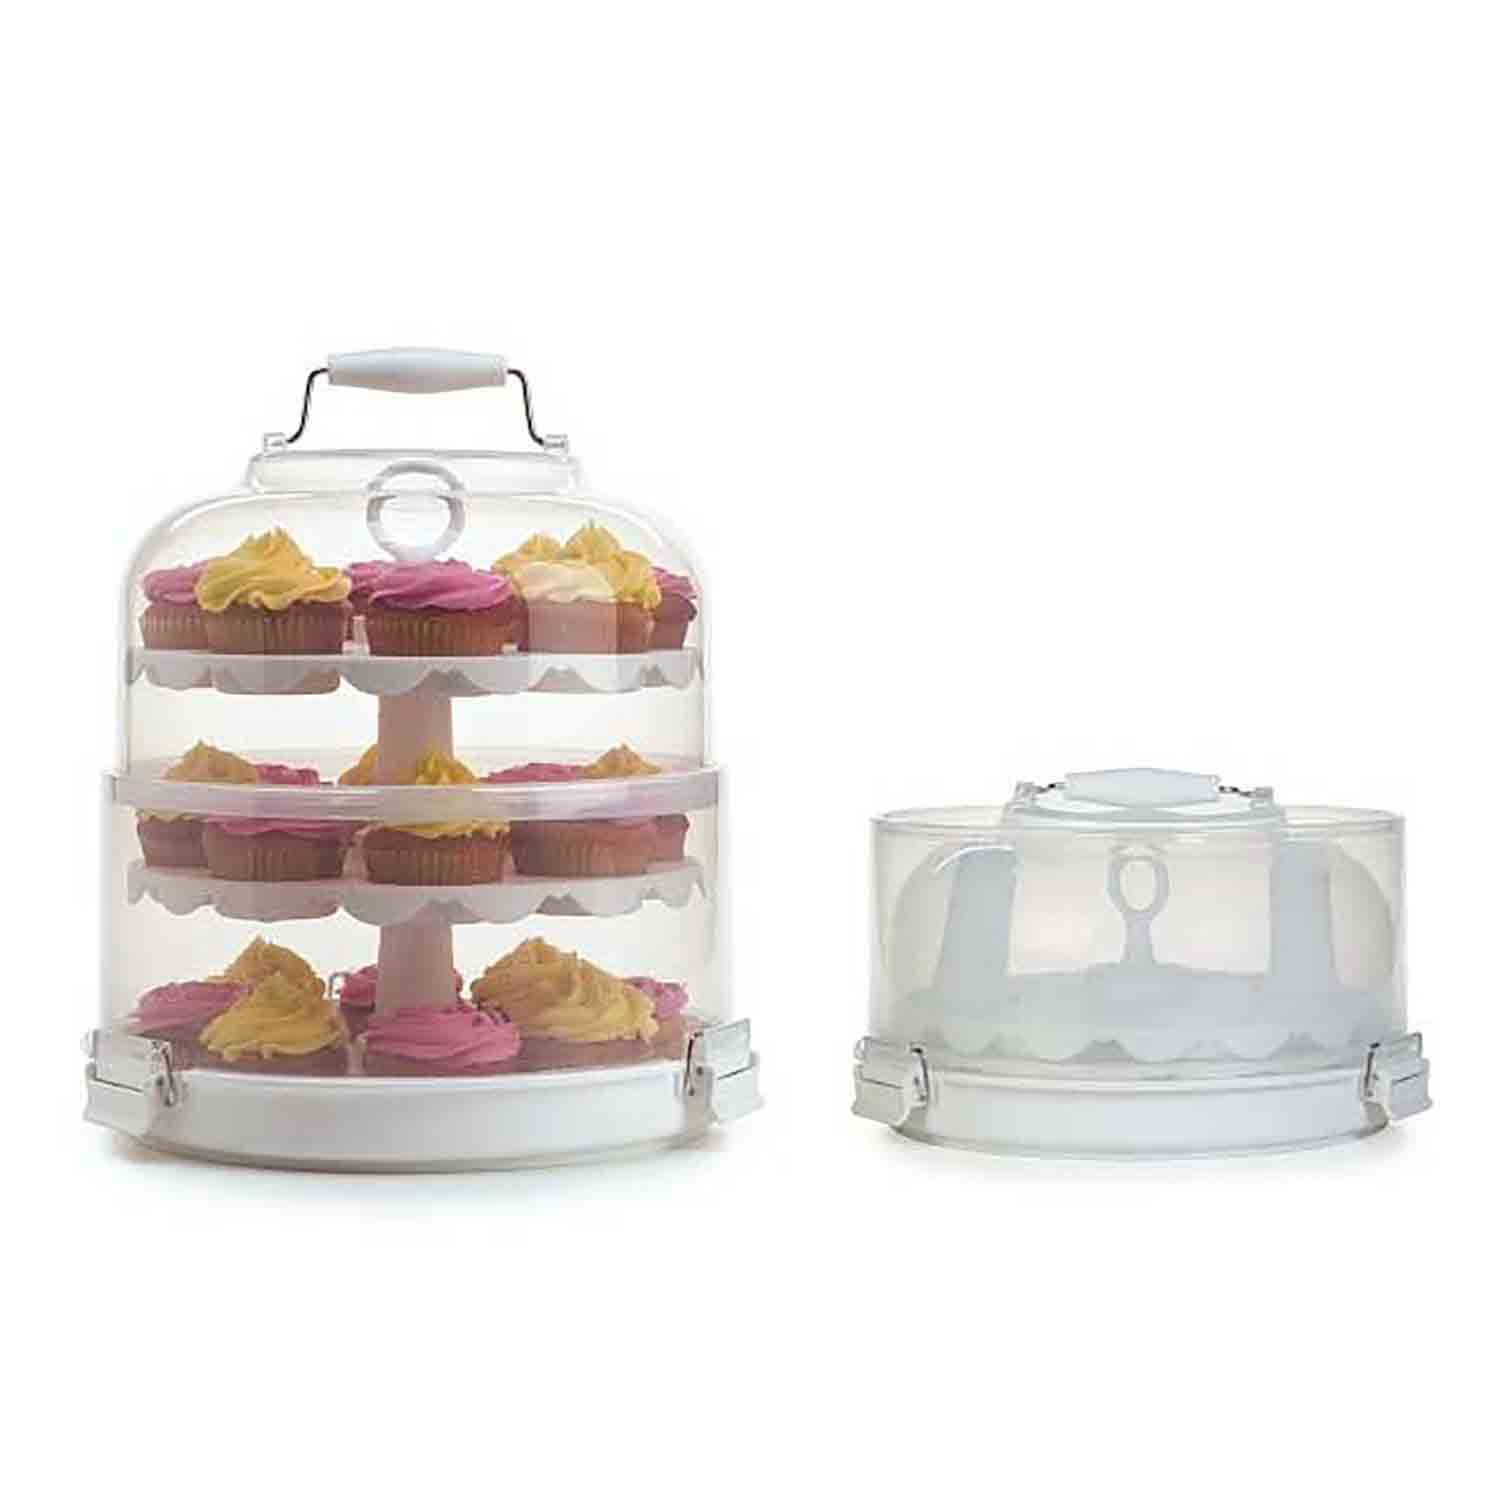 Cupcake Carrier and Display